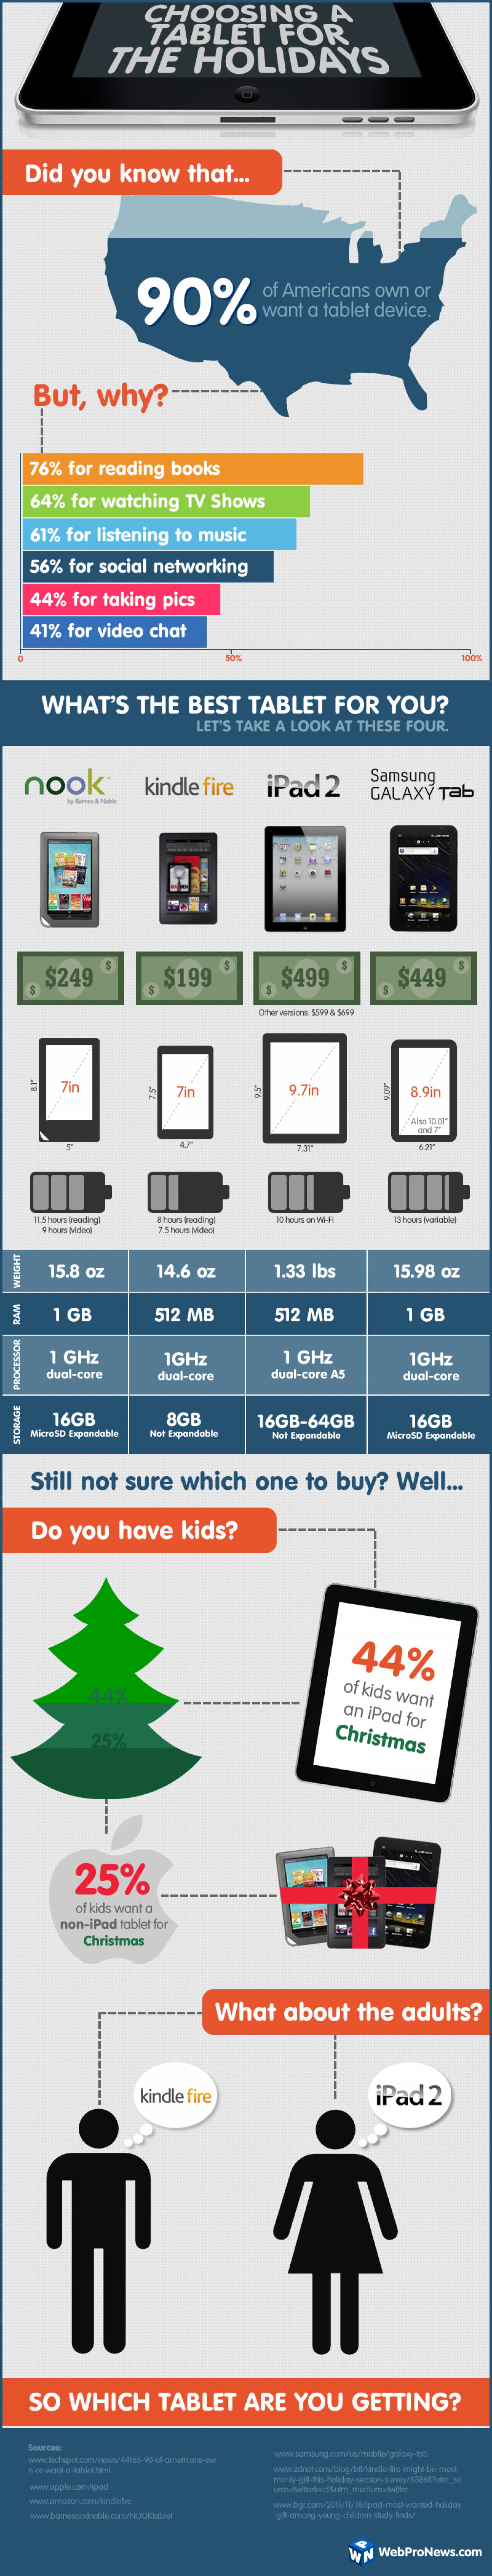 Choosing A Tablet For The Holidays Infographic